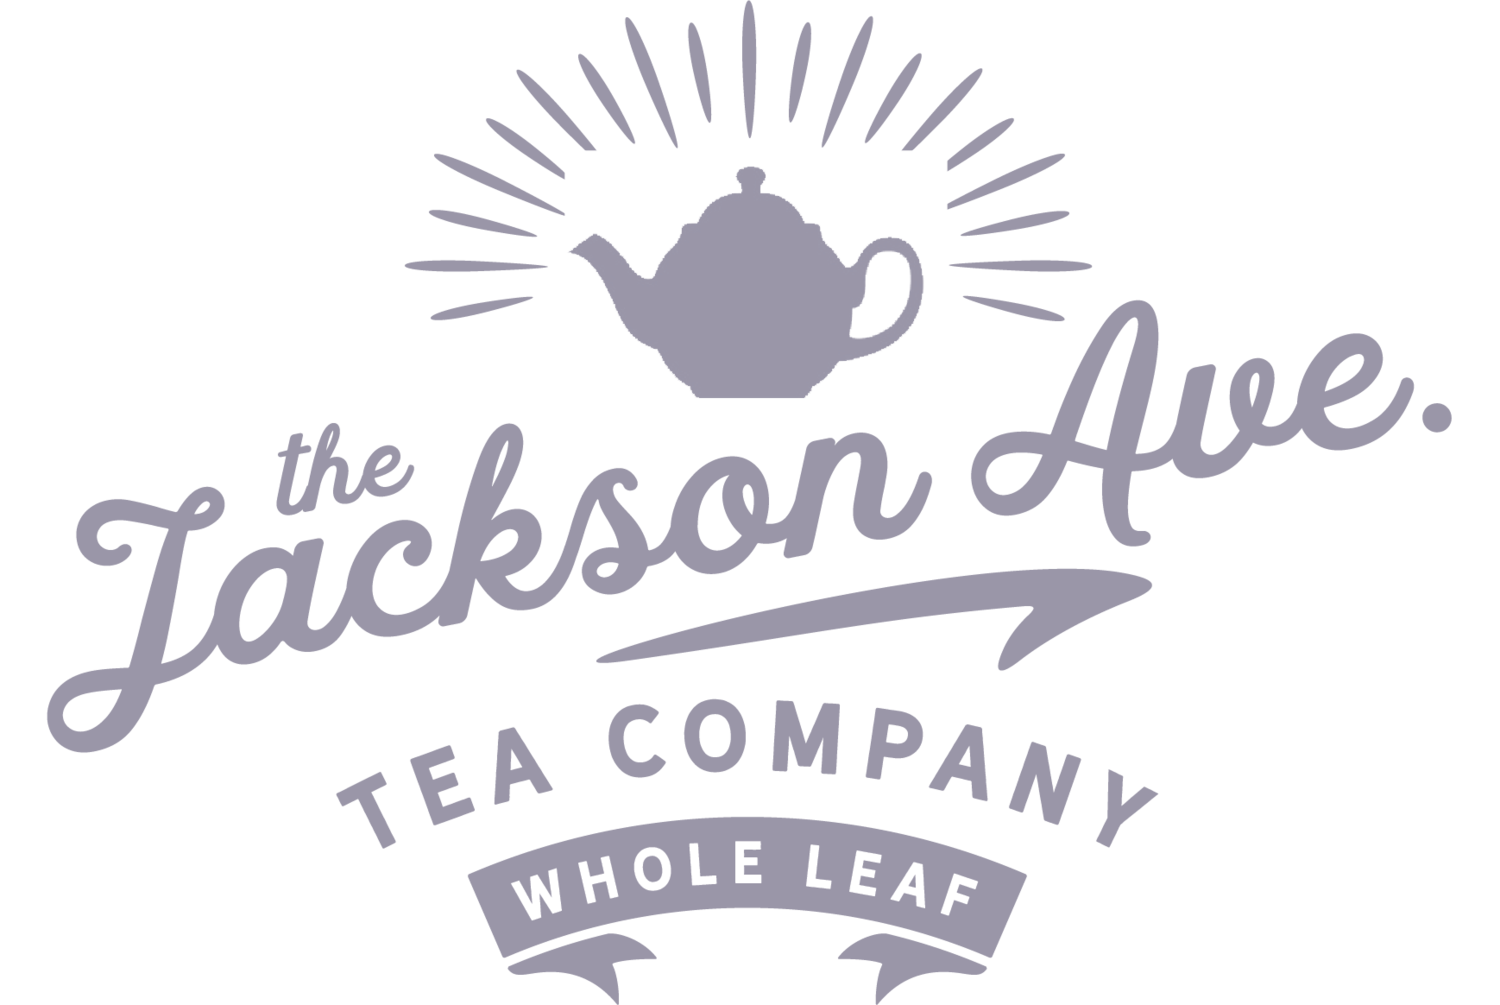 The Jackson Avenue Tea Company